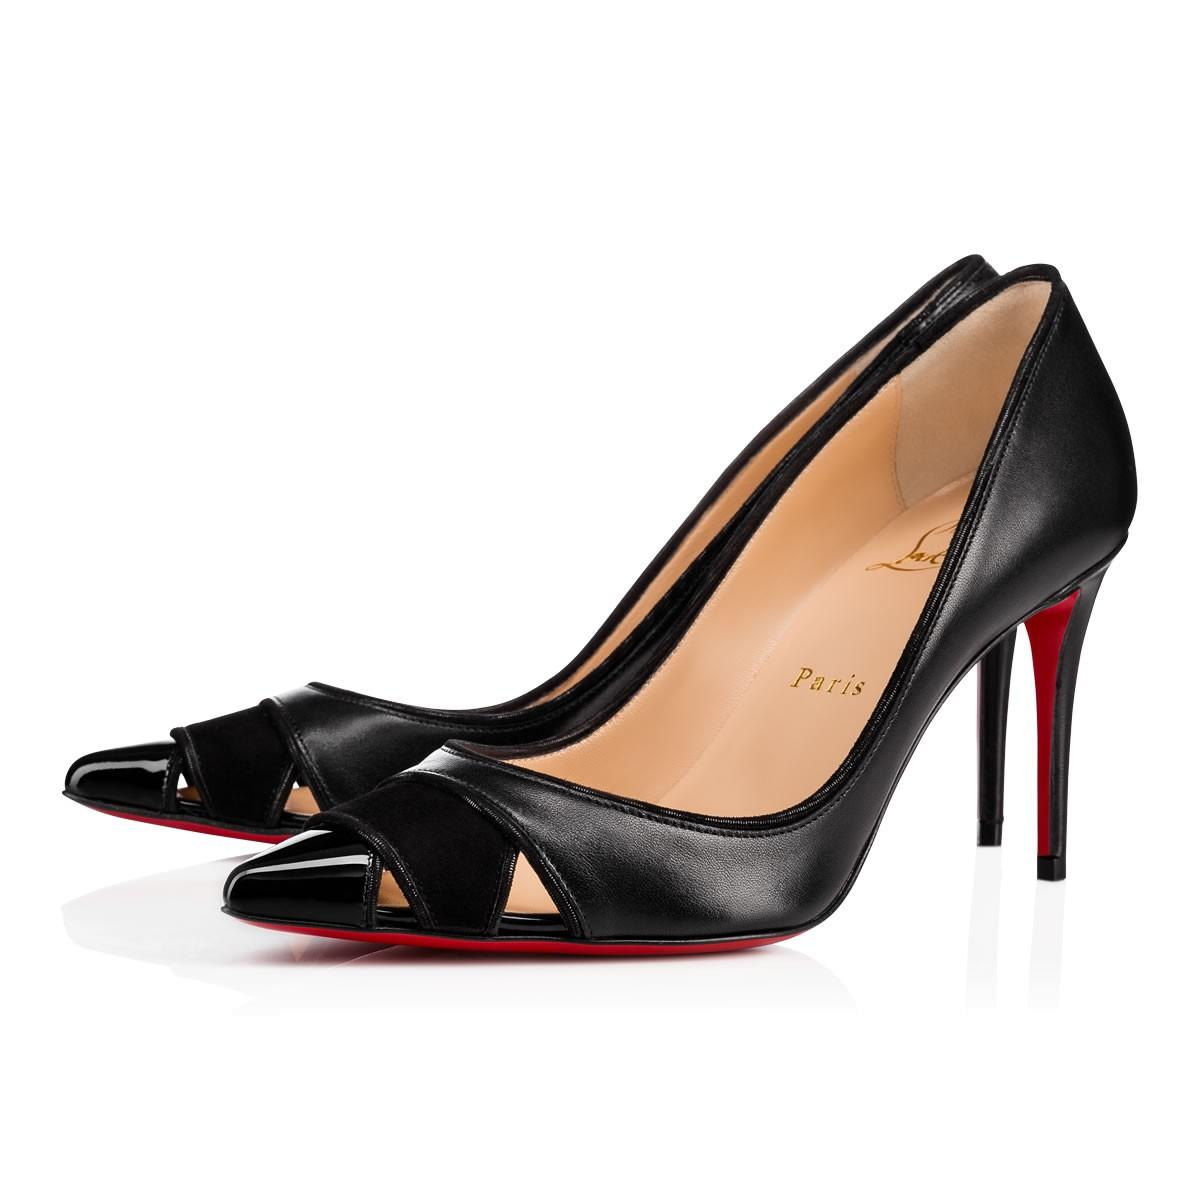 c778a6ae6c6a Christian Louboutin Biblio Leather 85Mm Red Sole Pump In Black ...